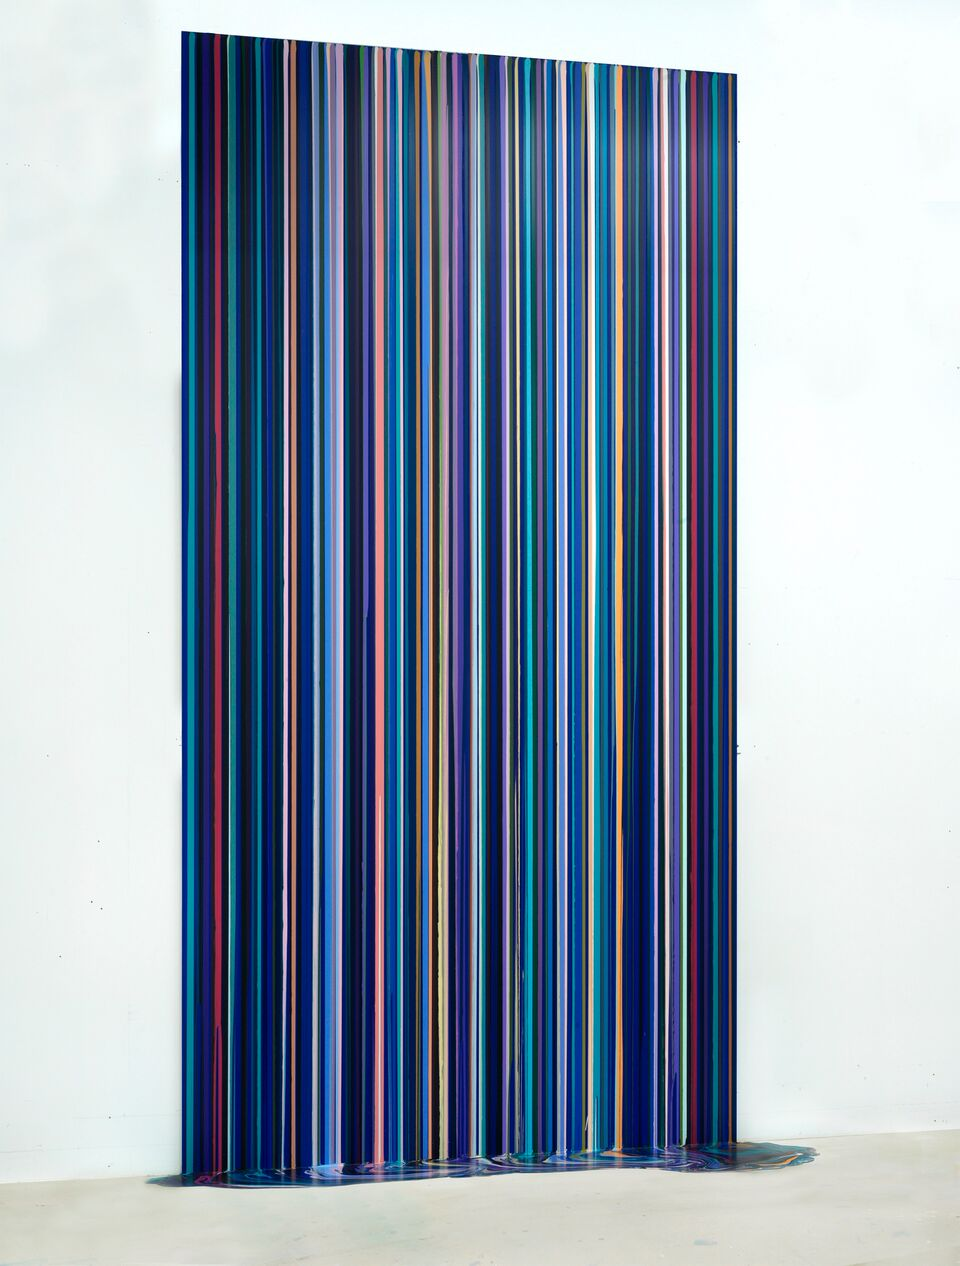 Ian Davenport Cobalt Blue Water Ian Davenport: Cascade 5 November 2017 – 6 January 2018 Visuals for the Press  2017 acrylic on aluminium mounted on aluminium FAD Magazine